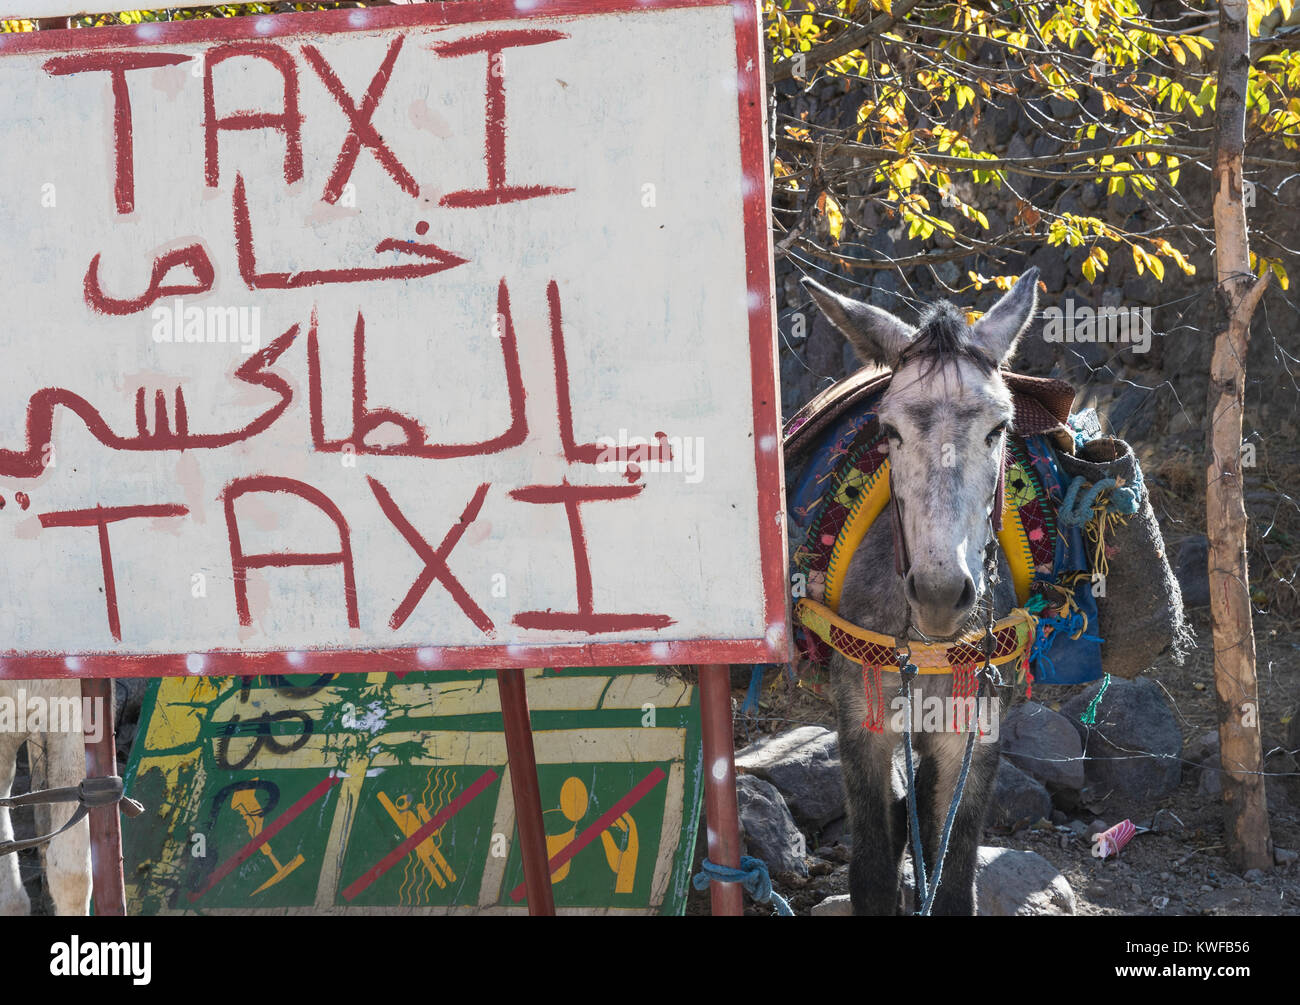 Mule Taxi promotional signage, Imlil, High Atlas. - Stock Image